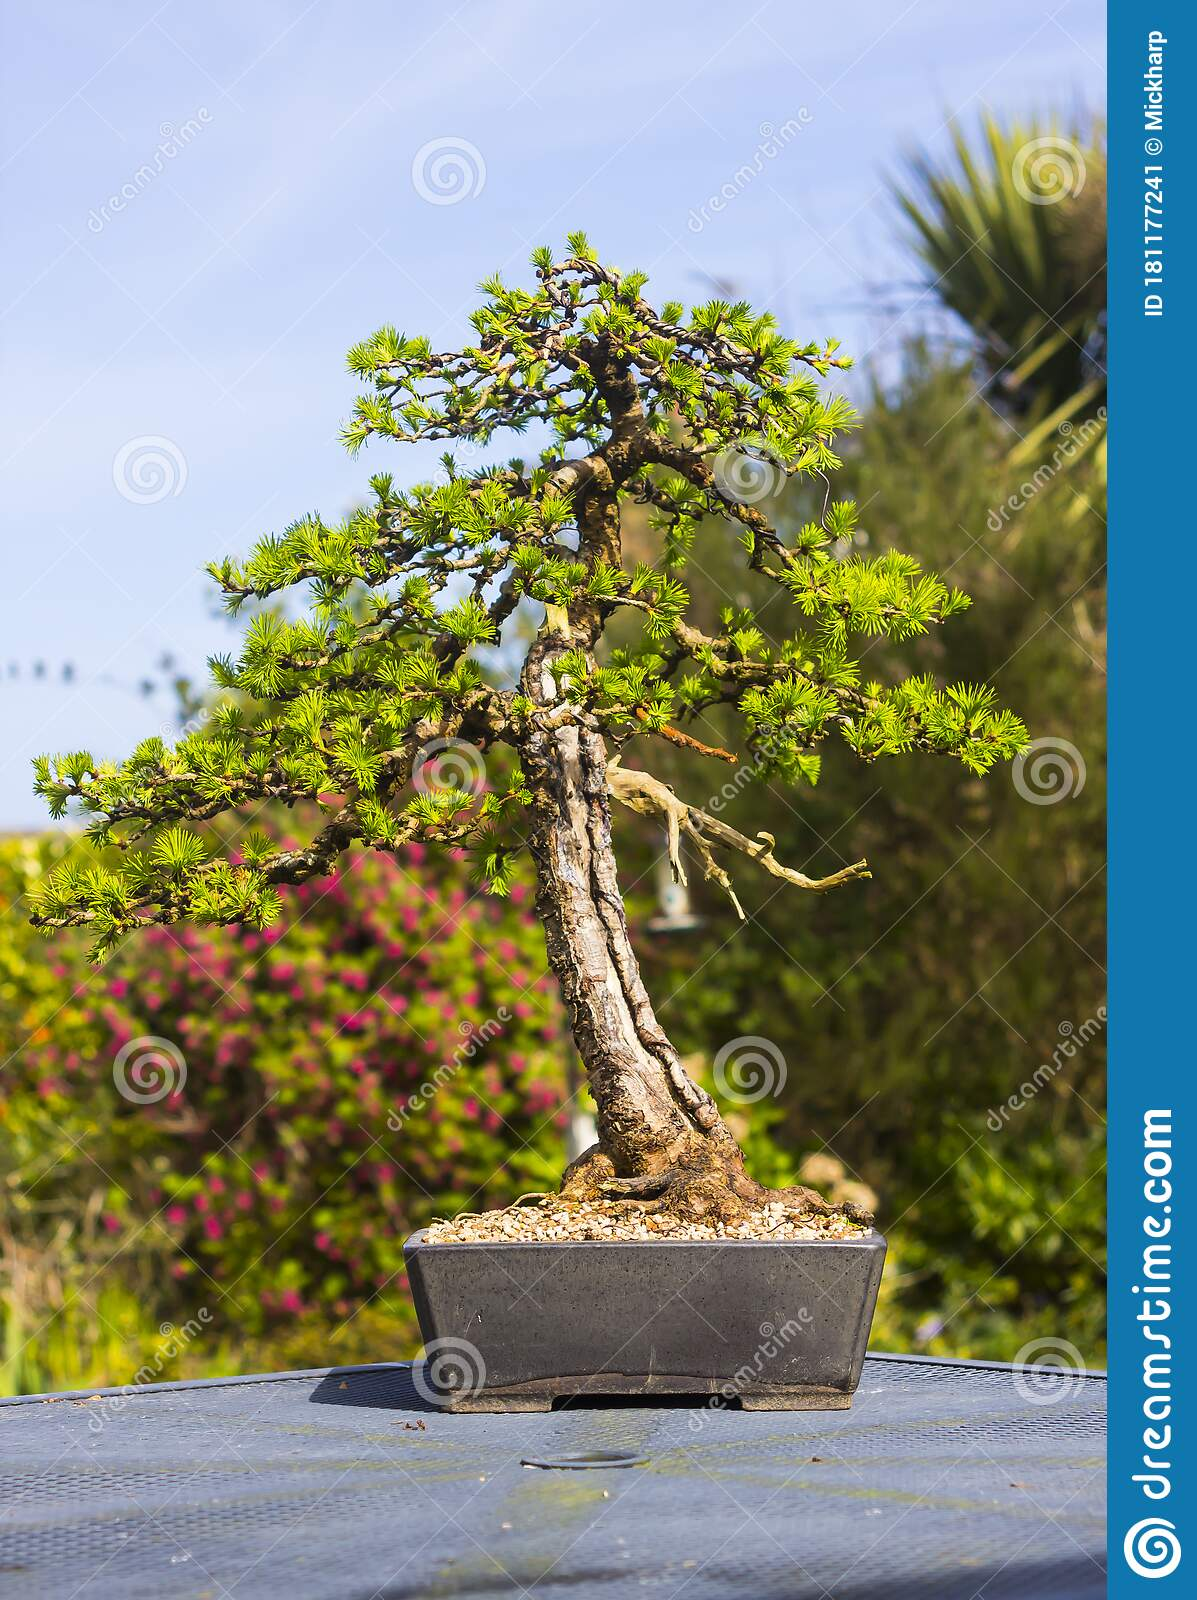 Larch Bonsai Photos Free Royalty Free Stock Photos From Dreamstime